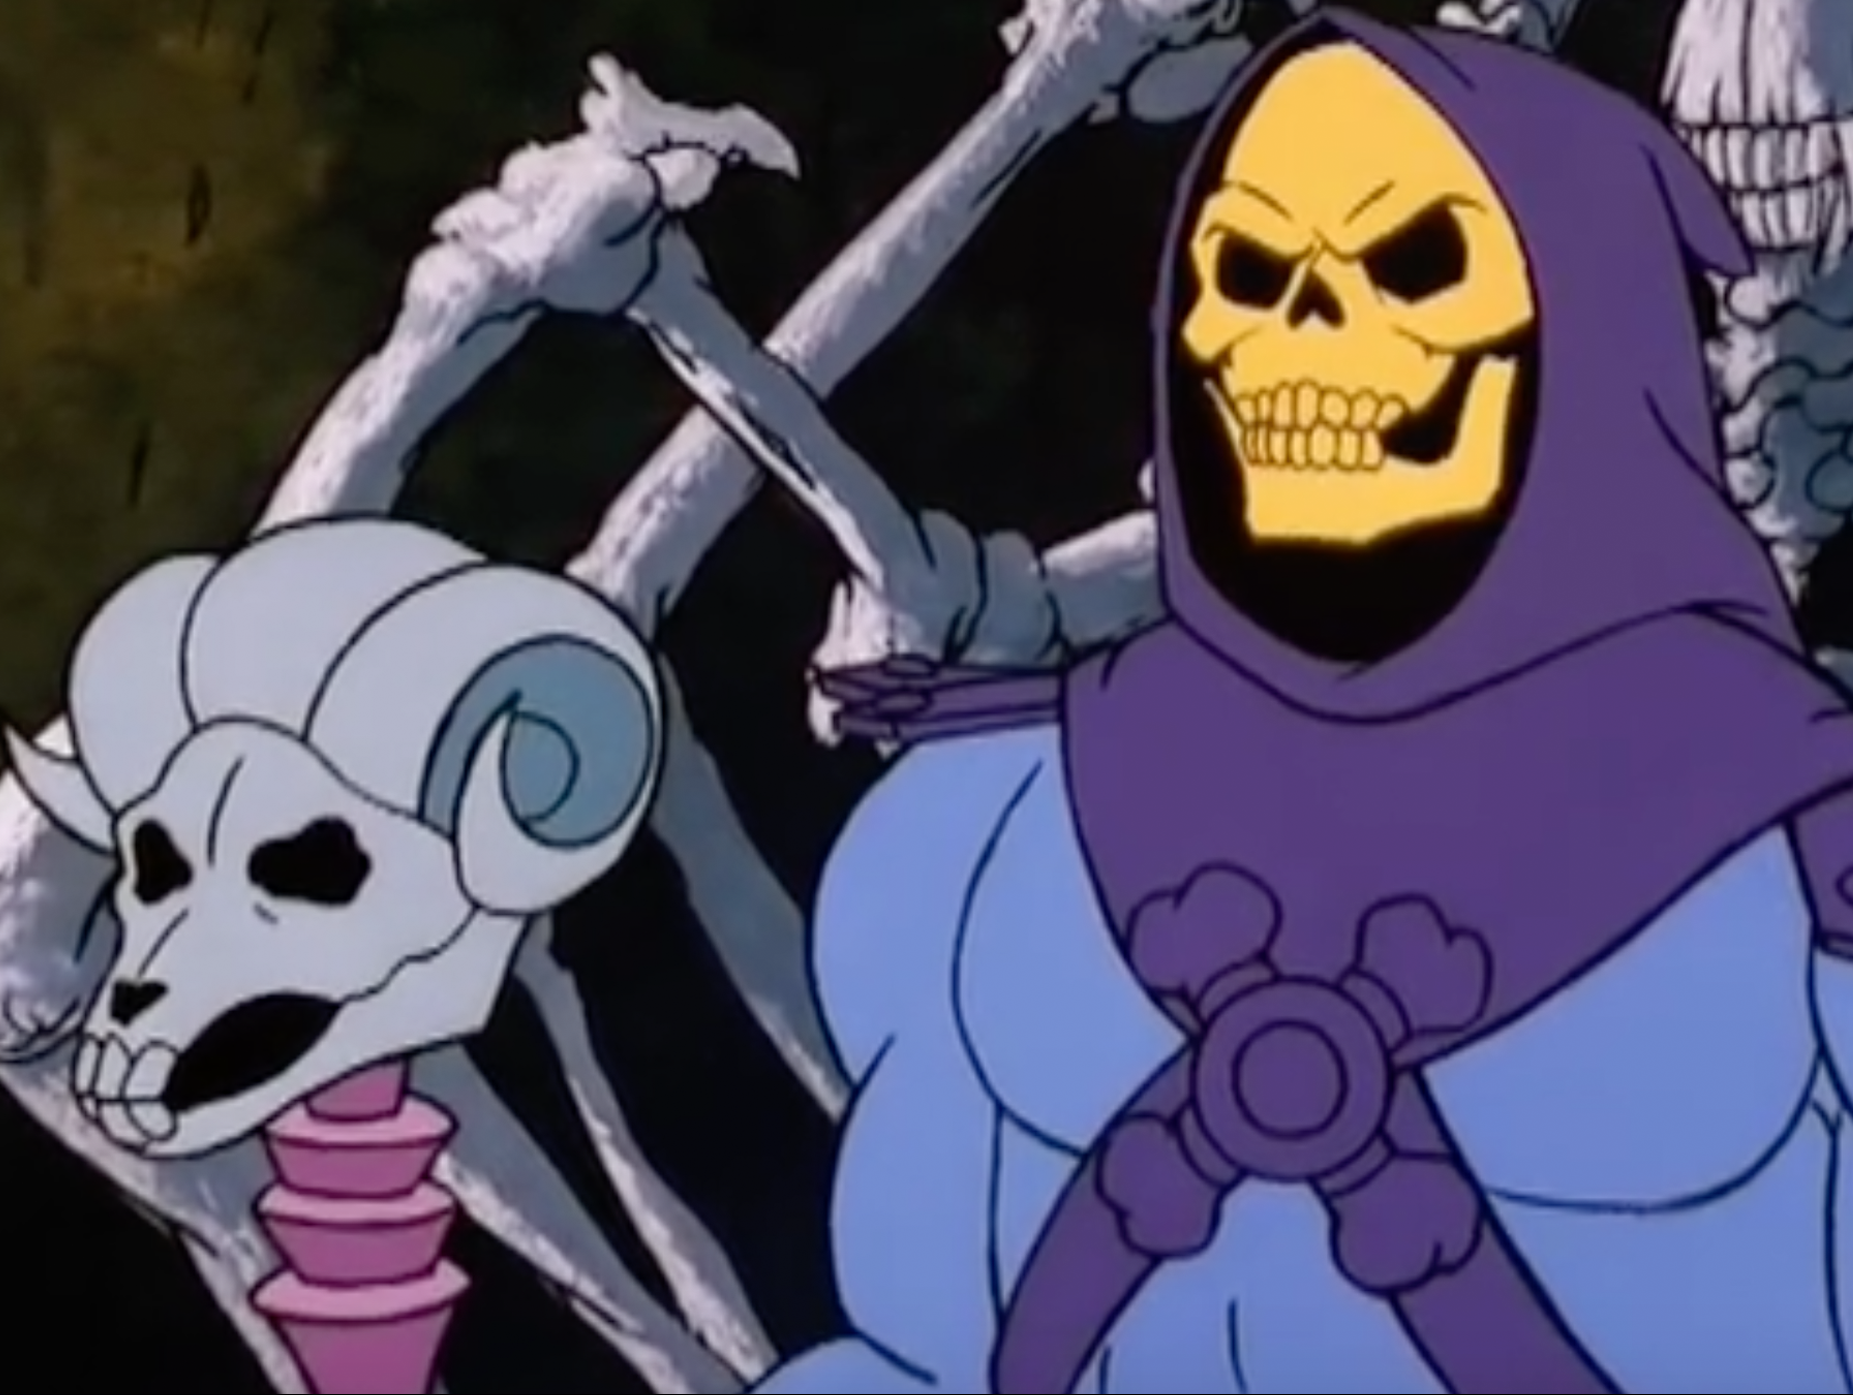 skeletor hero e1628773631549 10 Villains From 80s Cartoons Who We All Loved To Hate Growing Up